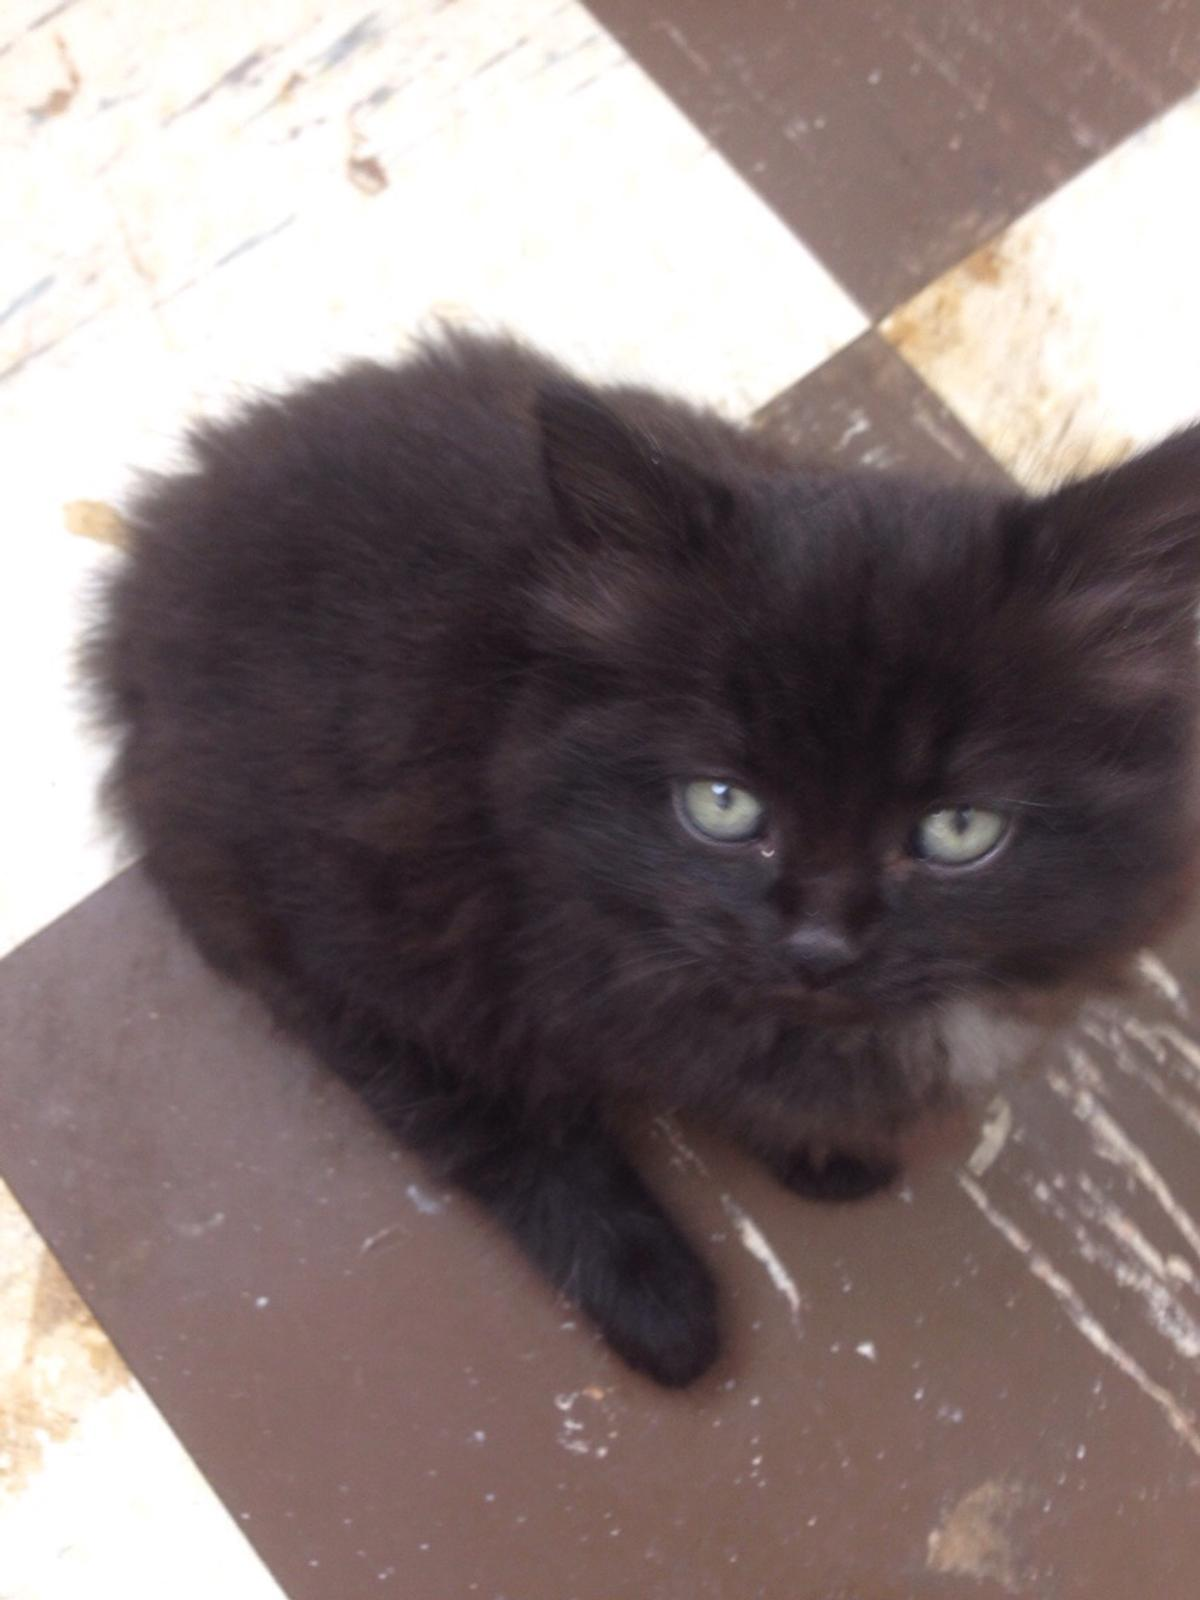 4 Black Kittens For Sale 8 Weeks Old In Ws7 Lichfield For